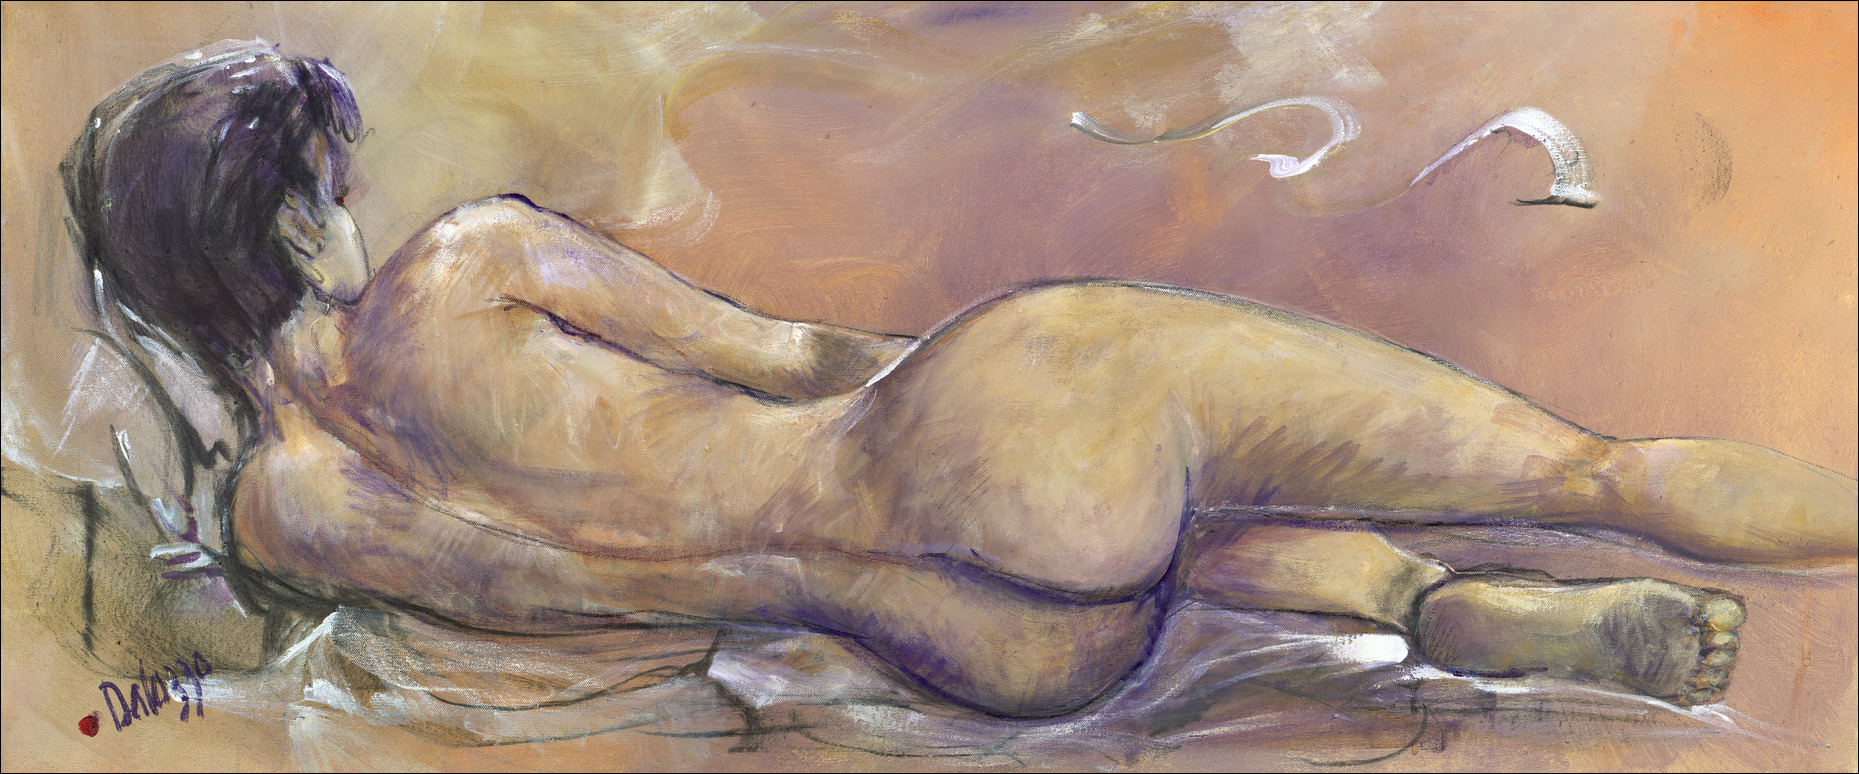 Reclining-Nude-5-Lucette-Dalozzo